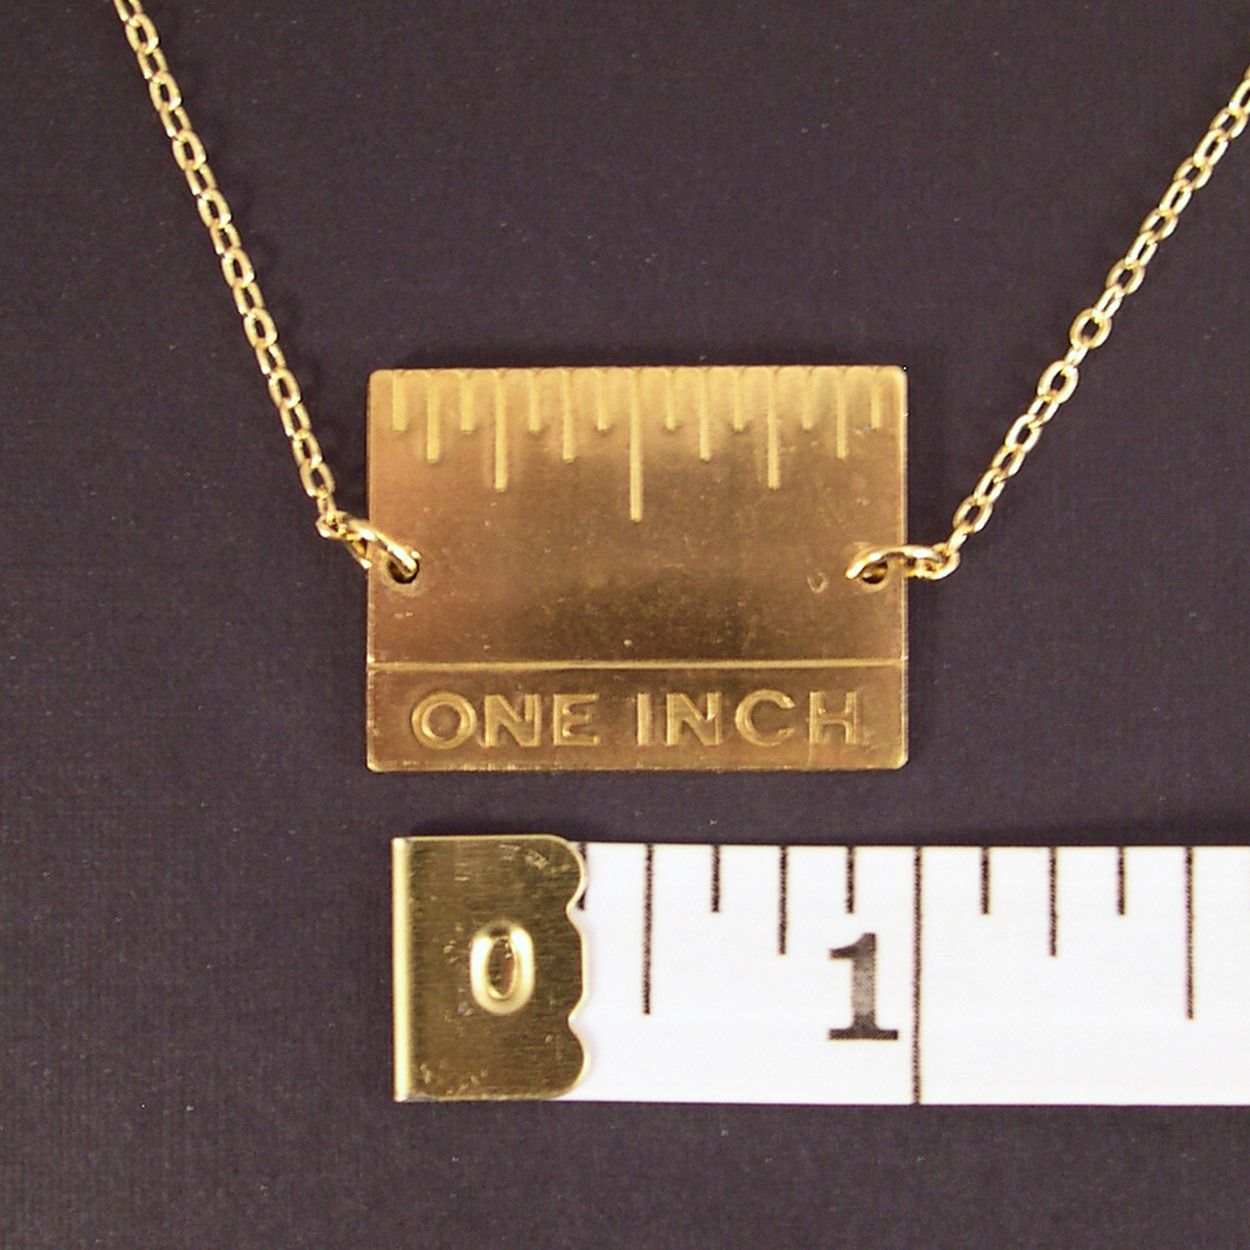 Golden Real Inch Ruler Necklace Gold Filled Chain Science Jewelry Geek Jewelry Gold Plated Necklace